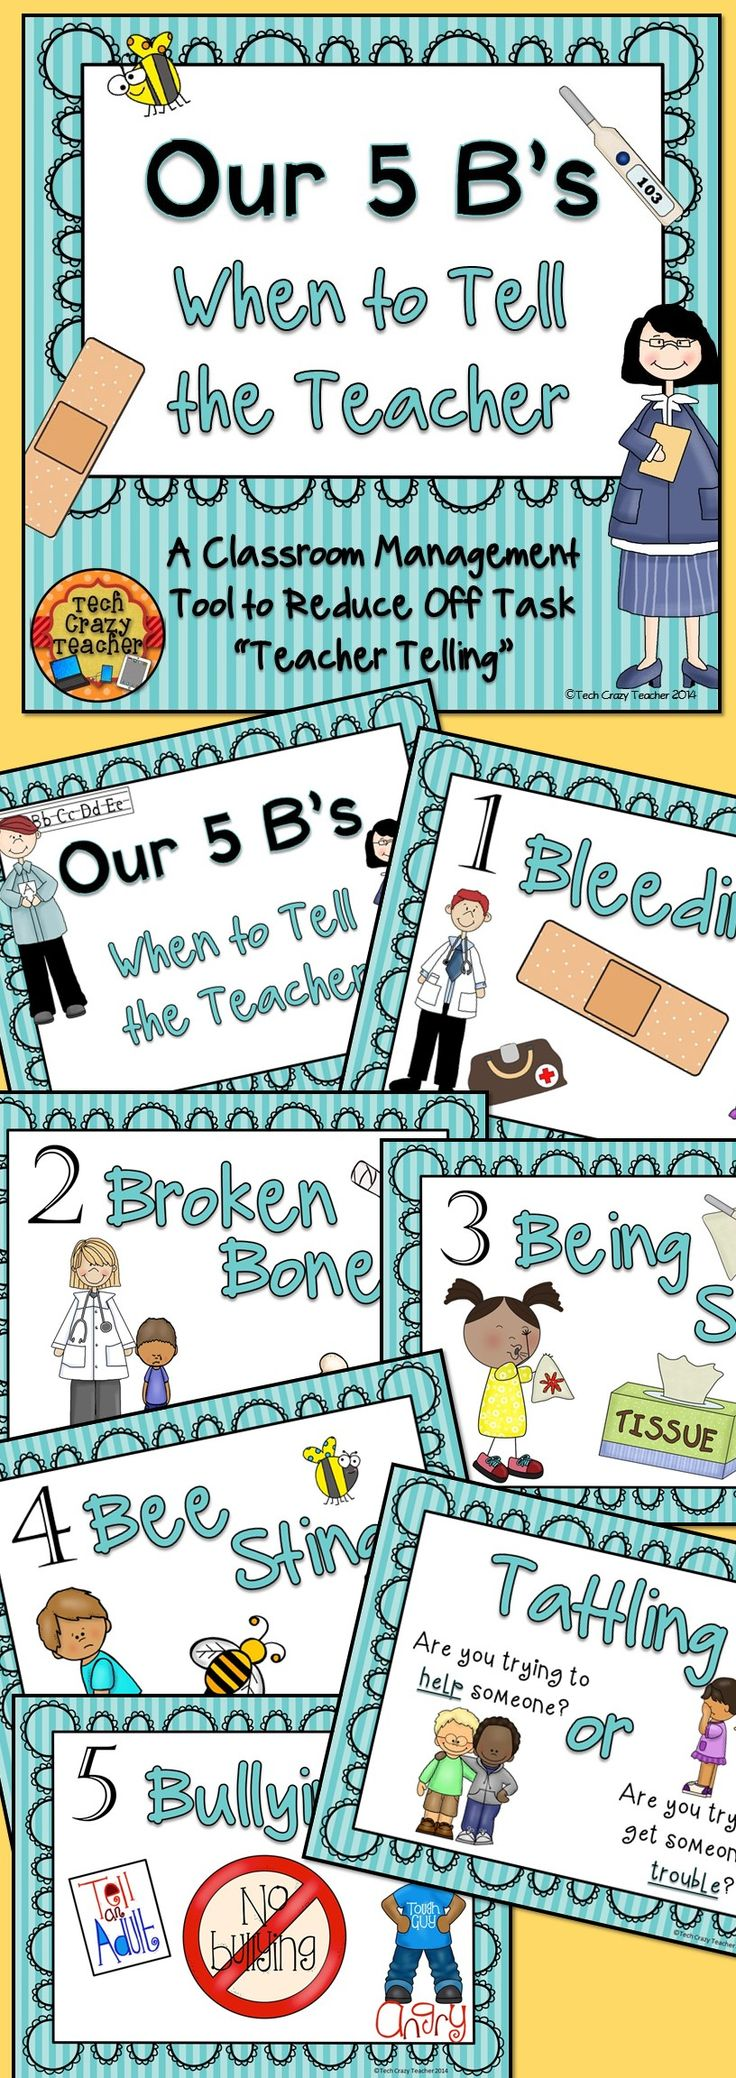 "Tired of your students running up and telling you every little thing? Trouble with tattling? Do you have students that need a Band-Aid for a teeny-tiny speck? Teach your students the 5 B's! The 5 B's is a classroom management tool meant to reduce off task ""teacher telling"" and tattling. The 5 B's help your students know when it's appropriate to go to the teacher and what things a teacher needs to know about.$"